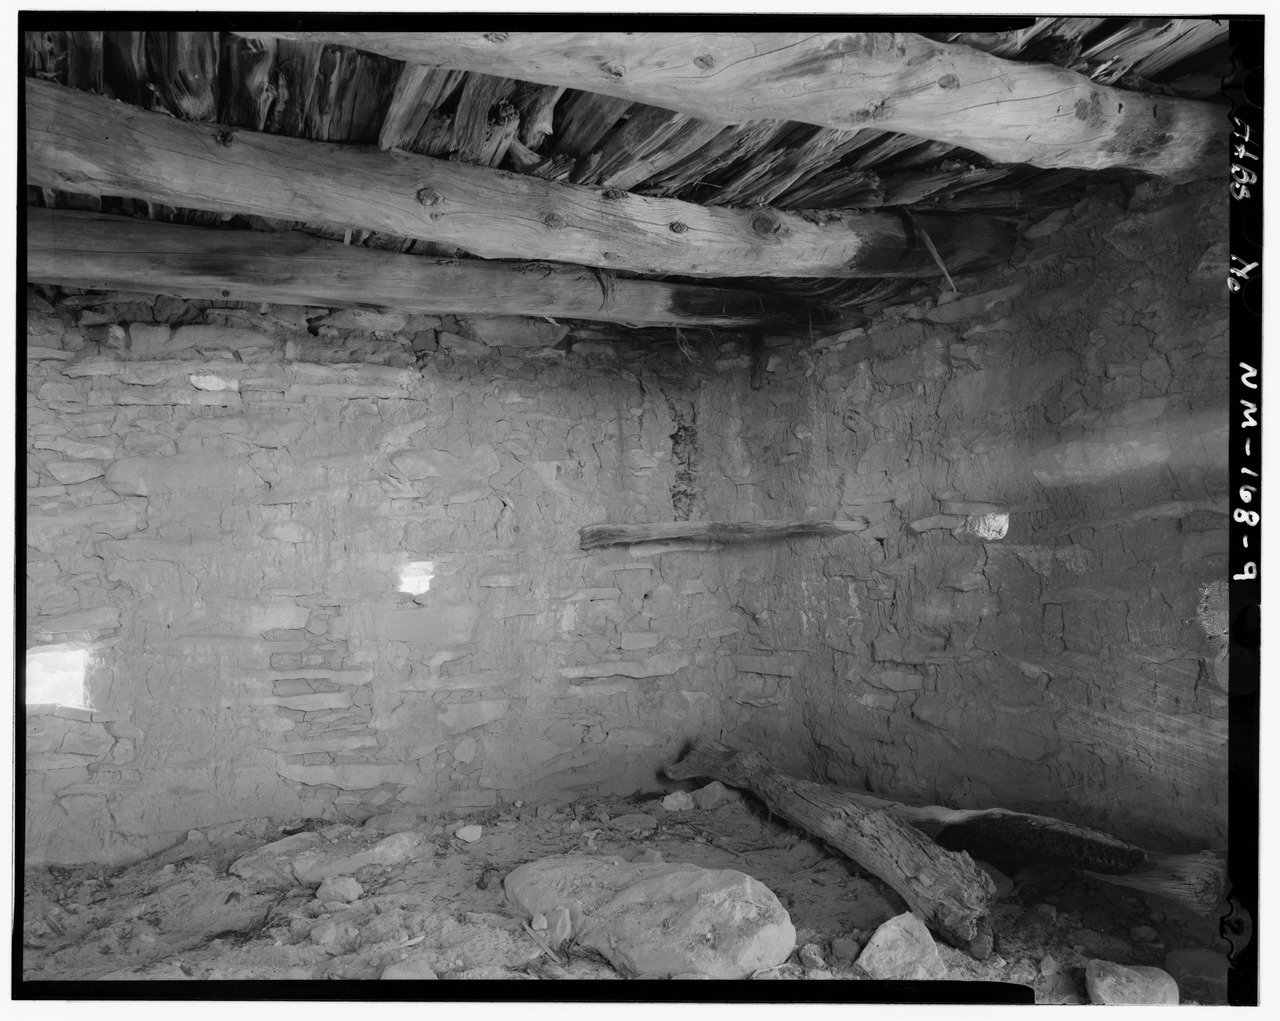 Image 7. Detail of room two, showing wall, ceiling and loop holes. Gobernador Knob, the sacred emergence point of the Navajo, can also be seen from the site. This is a Pueblito, a small multi-roomed masonry dwelling found in the Navajo homeland, or Dinetah region of northwest New Mexico. Constructed between 1749 and 1753. — Gould Pass Pueblito, Carrizo Canyon, Dulce, Rio Arriba County, NM, USA). ... From the Historic American Buildings Survey (HABS), Historic American Engineering Record (HAER) or Historic American Landscapes Survey (HALS). These are programs of the National Park Service established for the purpose of documenting historic places. Records consist of measured drawings, archival photographs, and written reports.. (title edited by author)